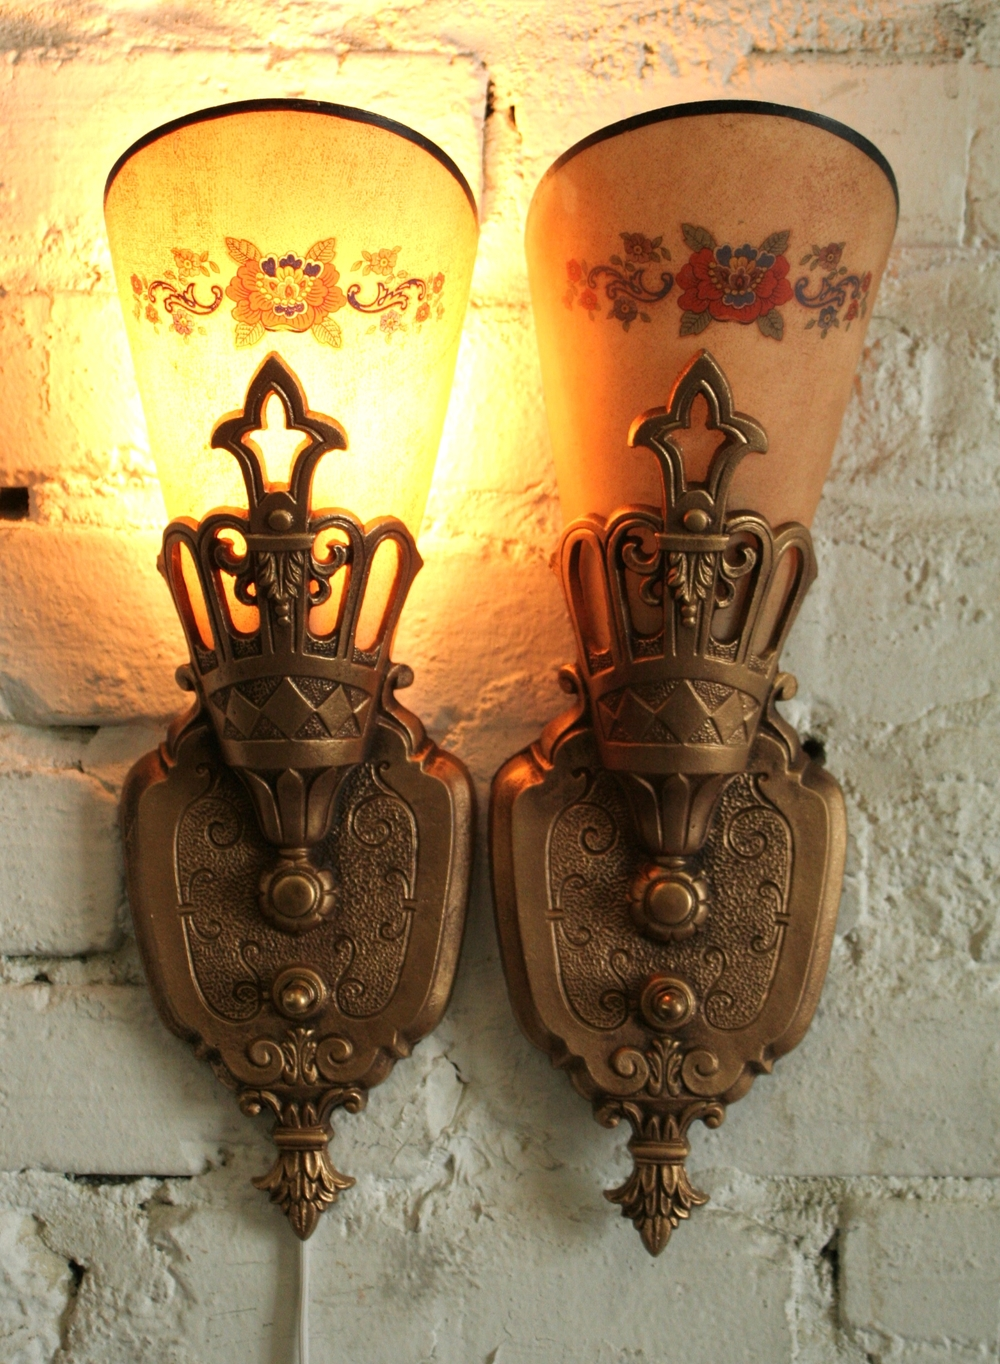 & Mid 1930s Art Deco Wall Sconces by Lincoln Restored Antique